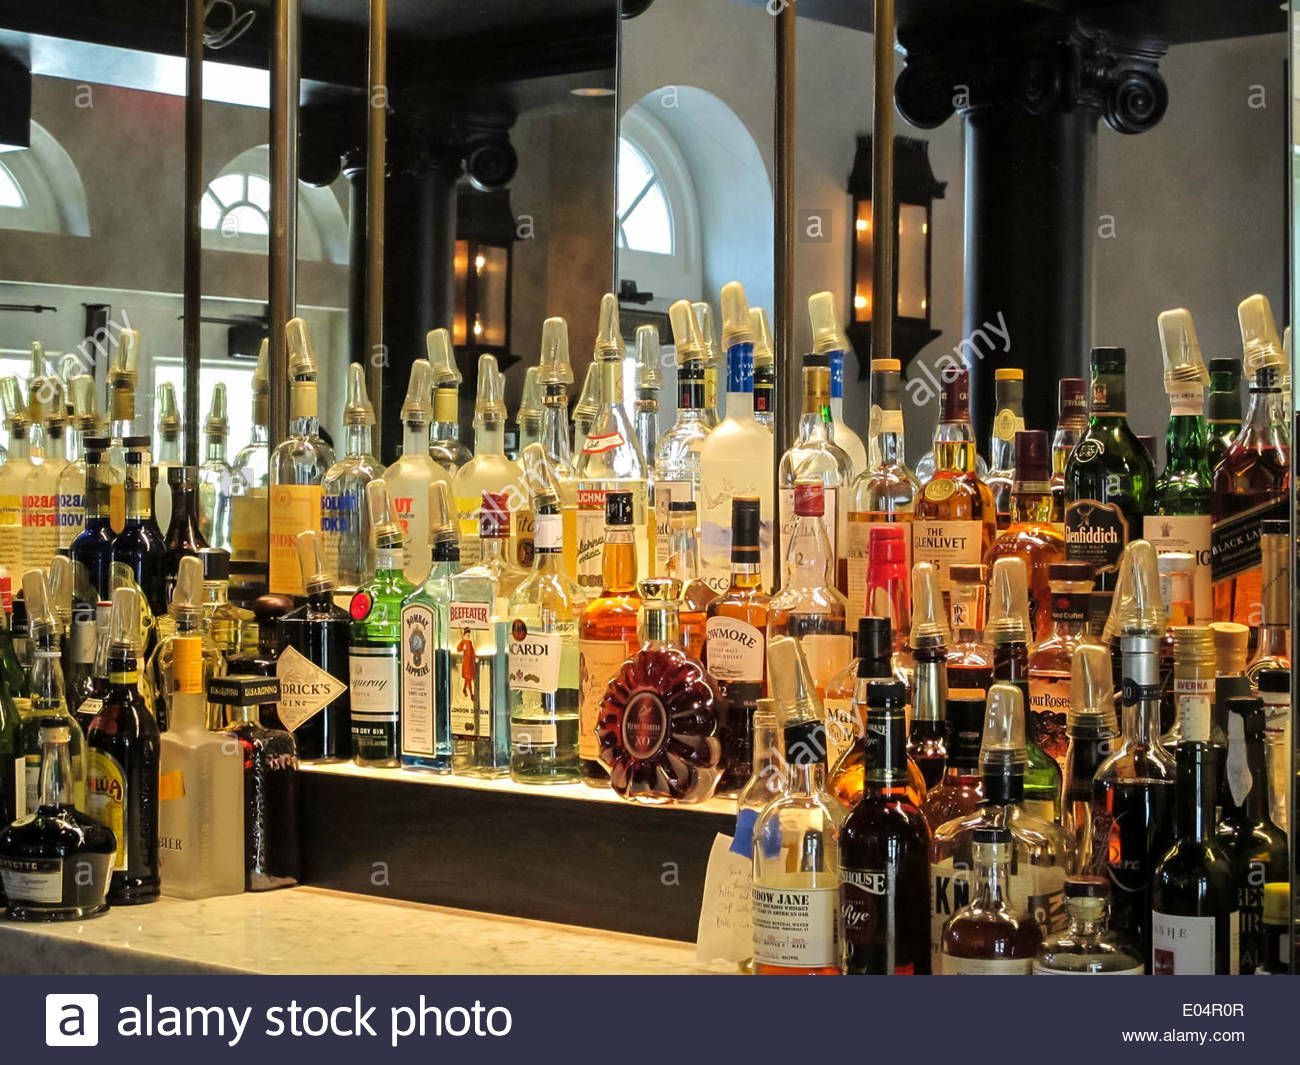 mirrors could make the liquor display look badass and also make the front bar area look more